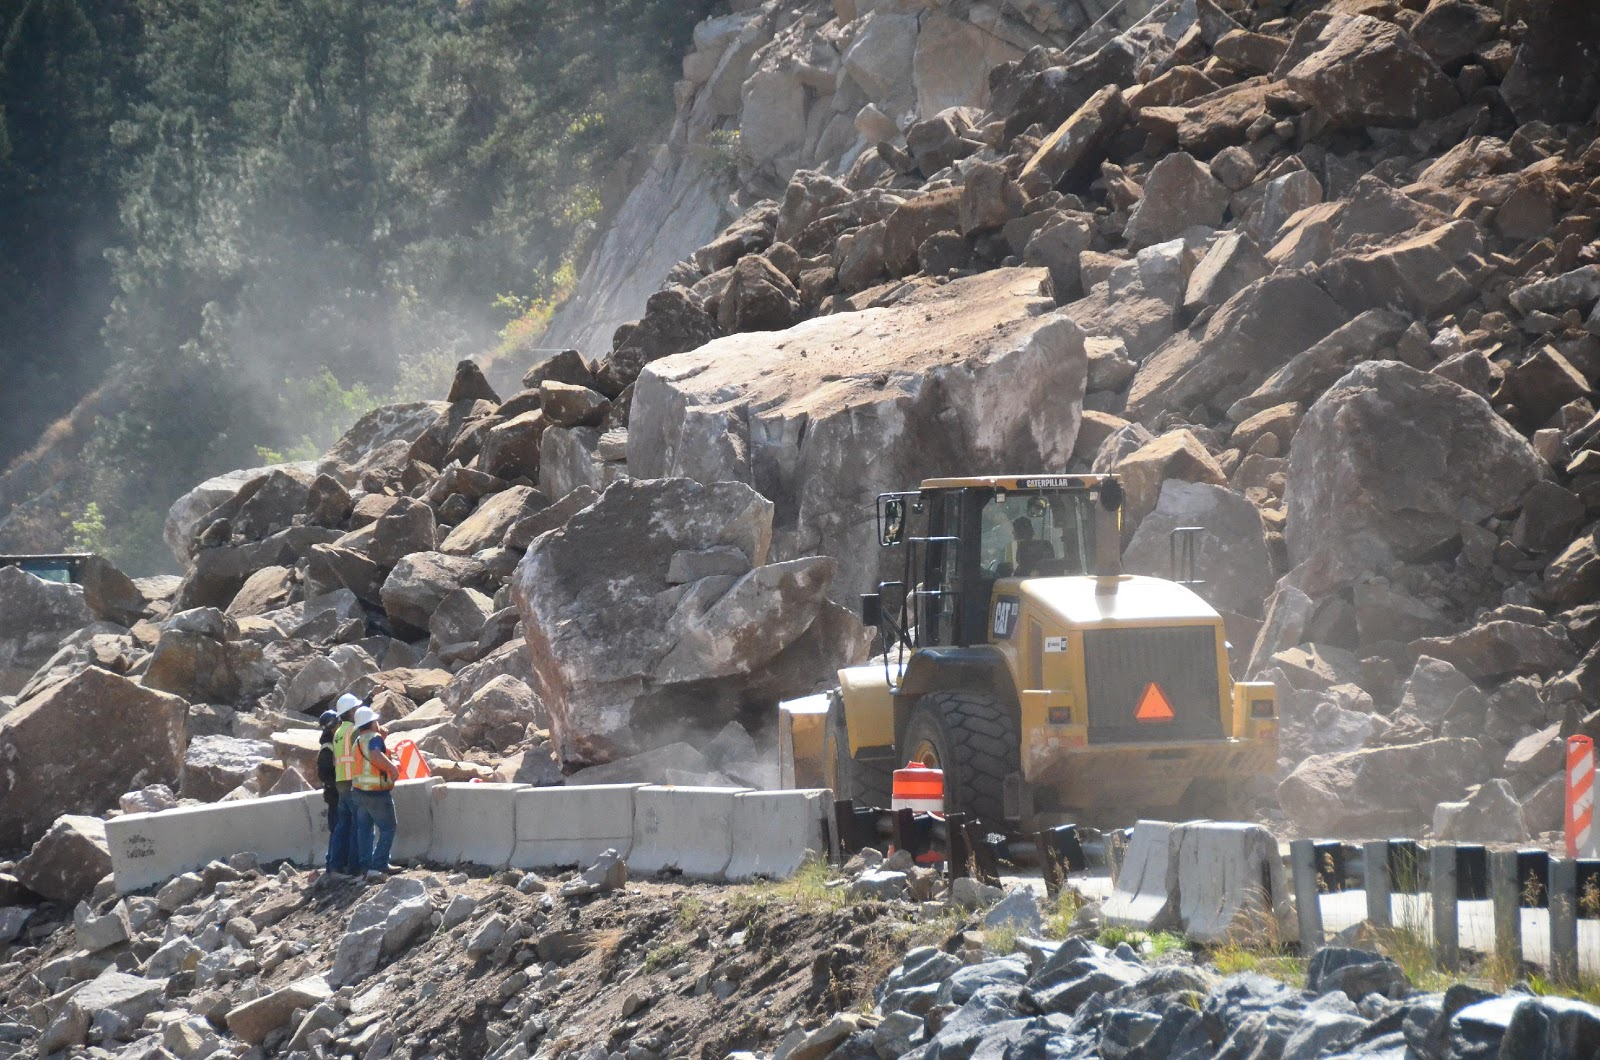 Boulder Canyon Closed After Rockfall